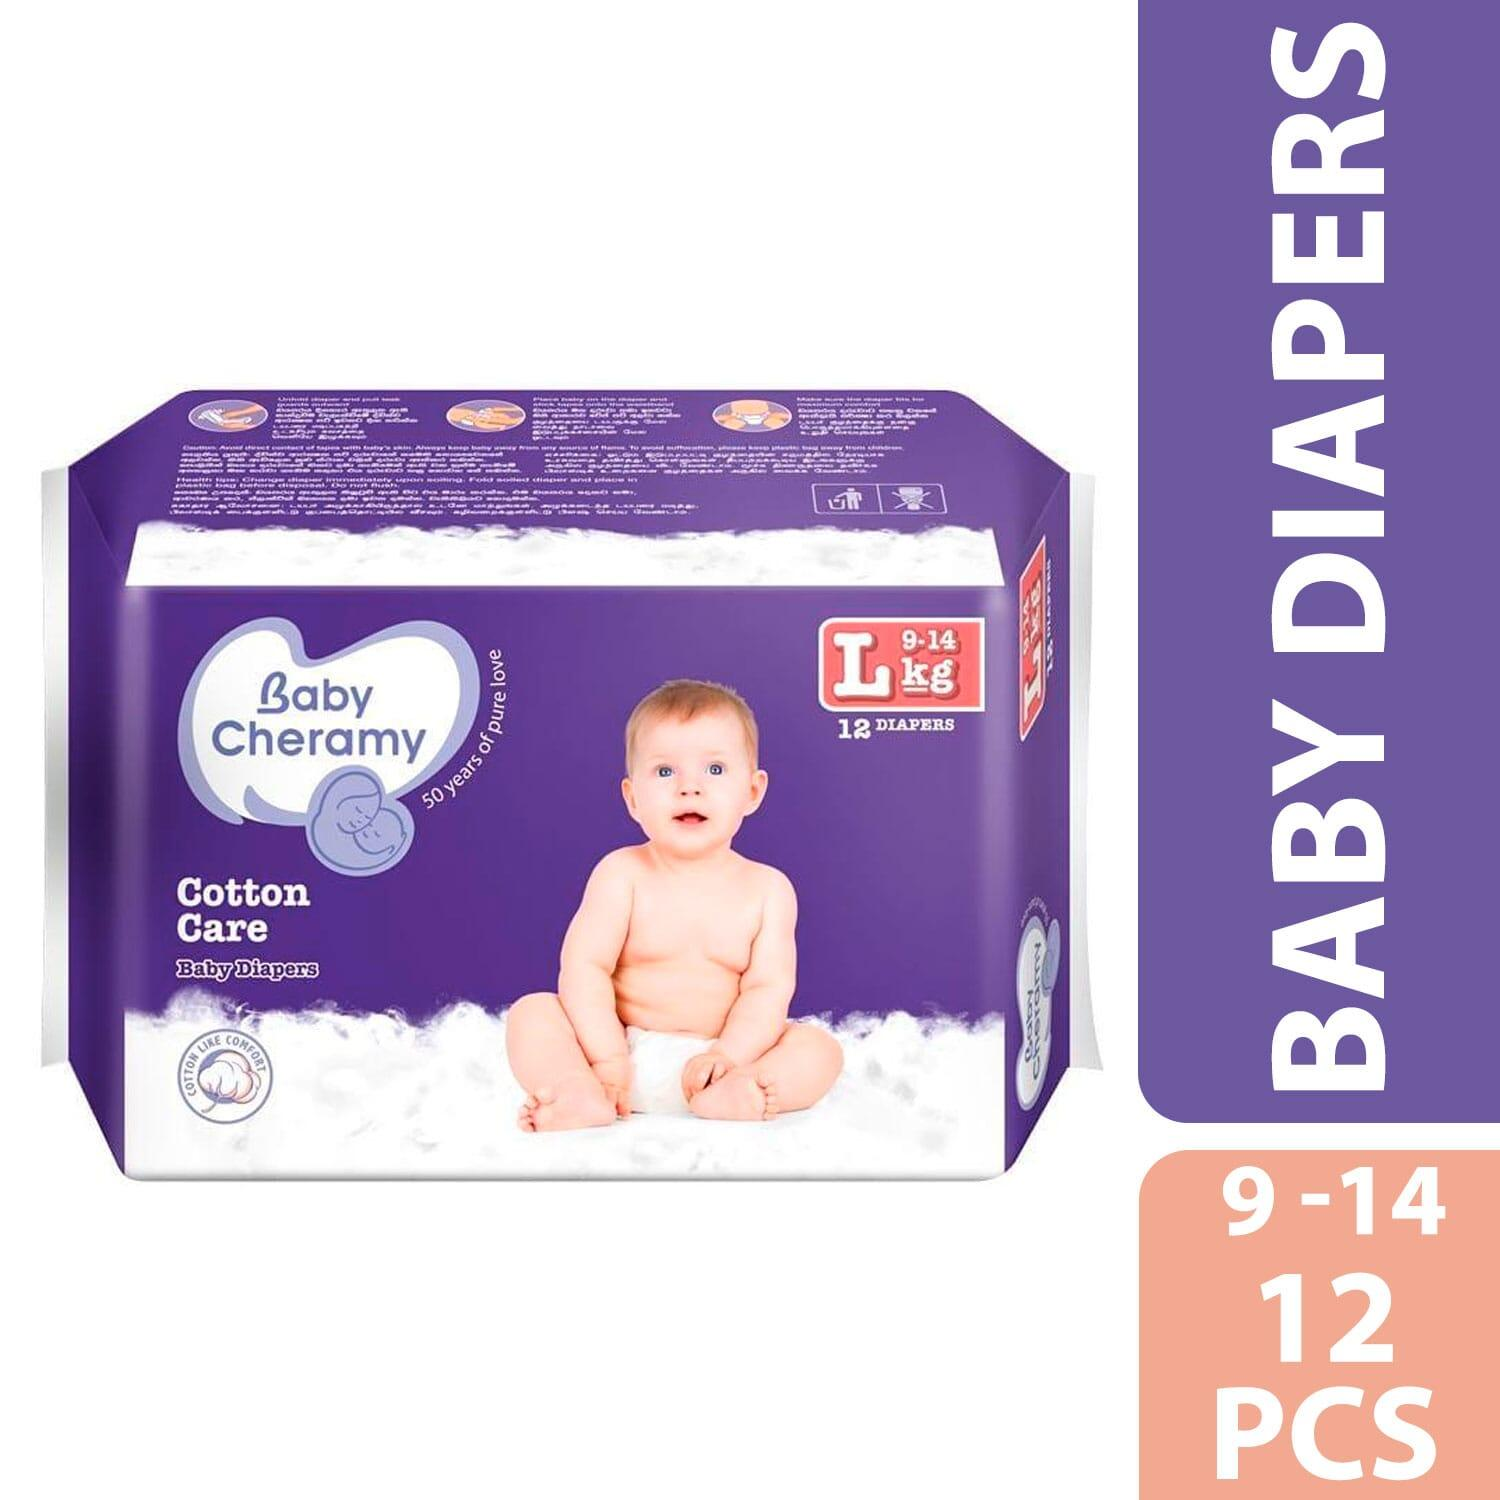 Baby Cheramy Baby Diapers - Large 12's